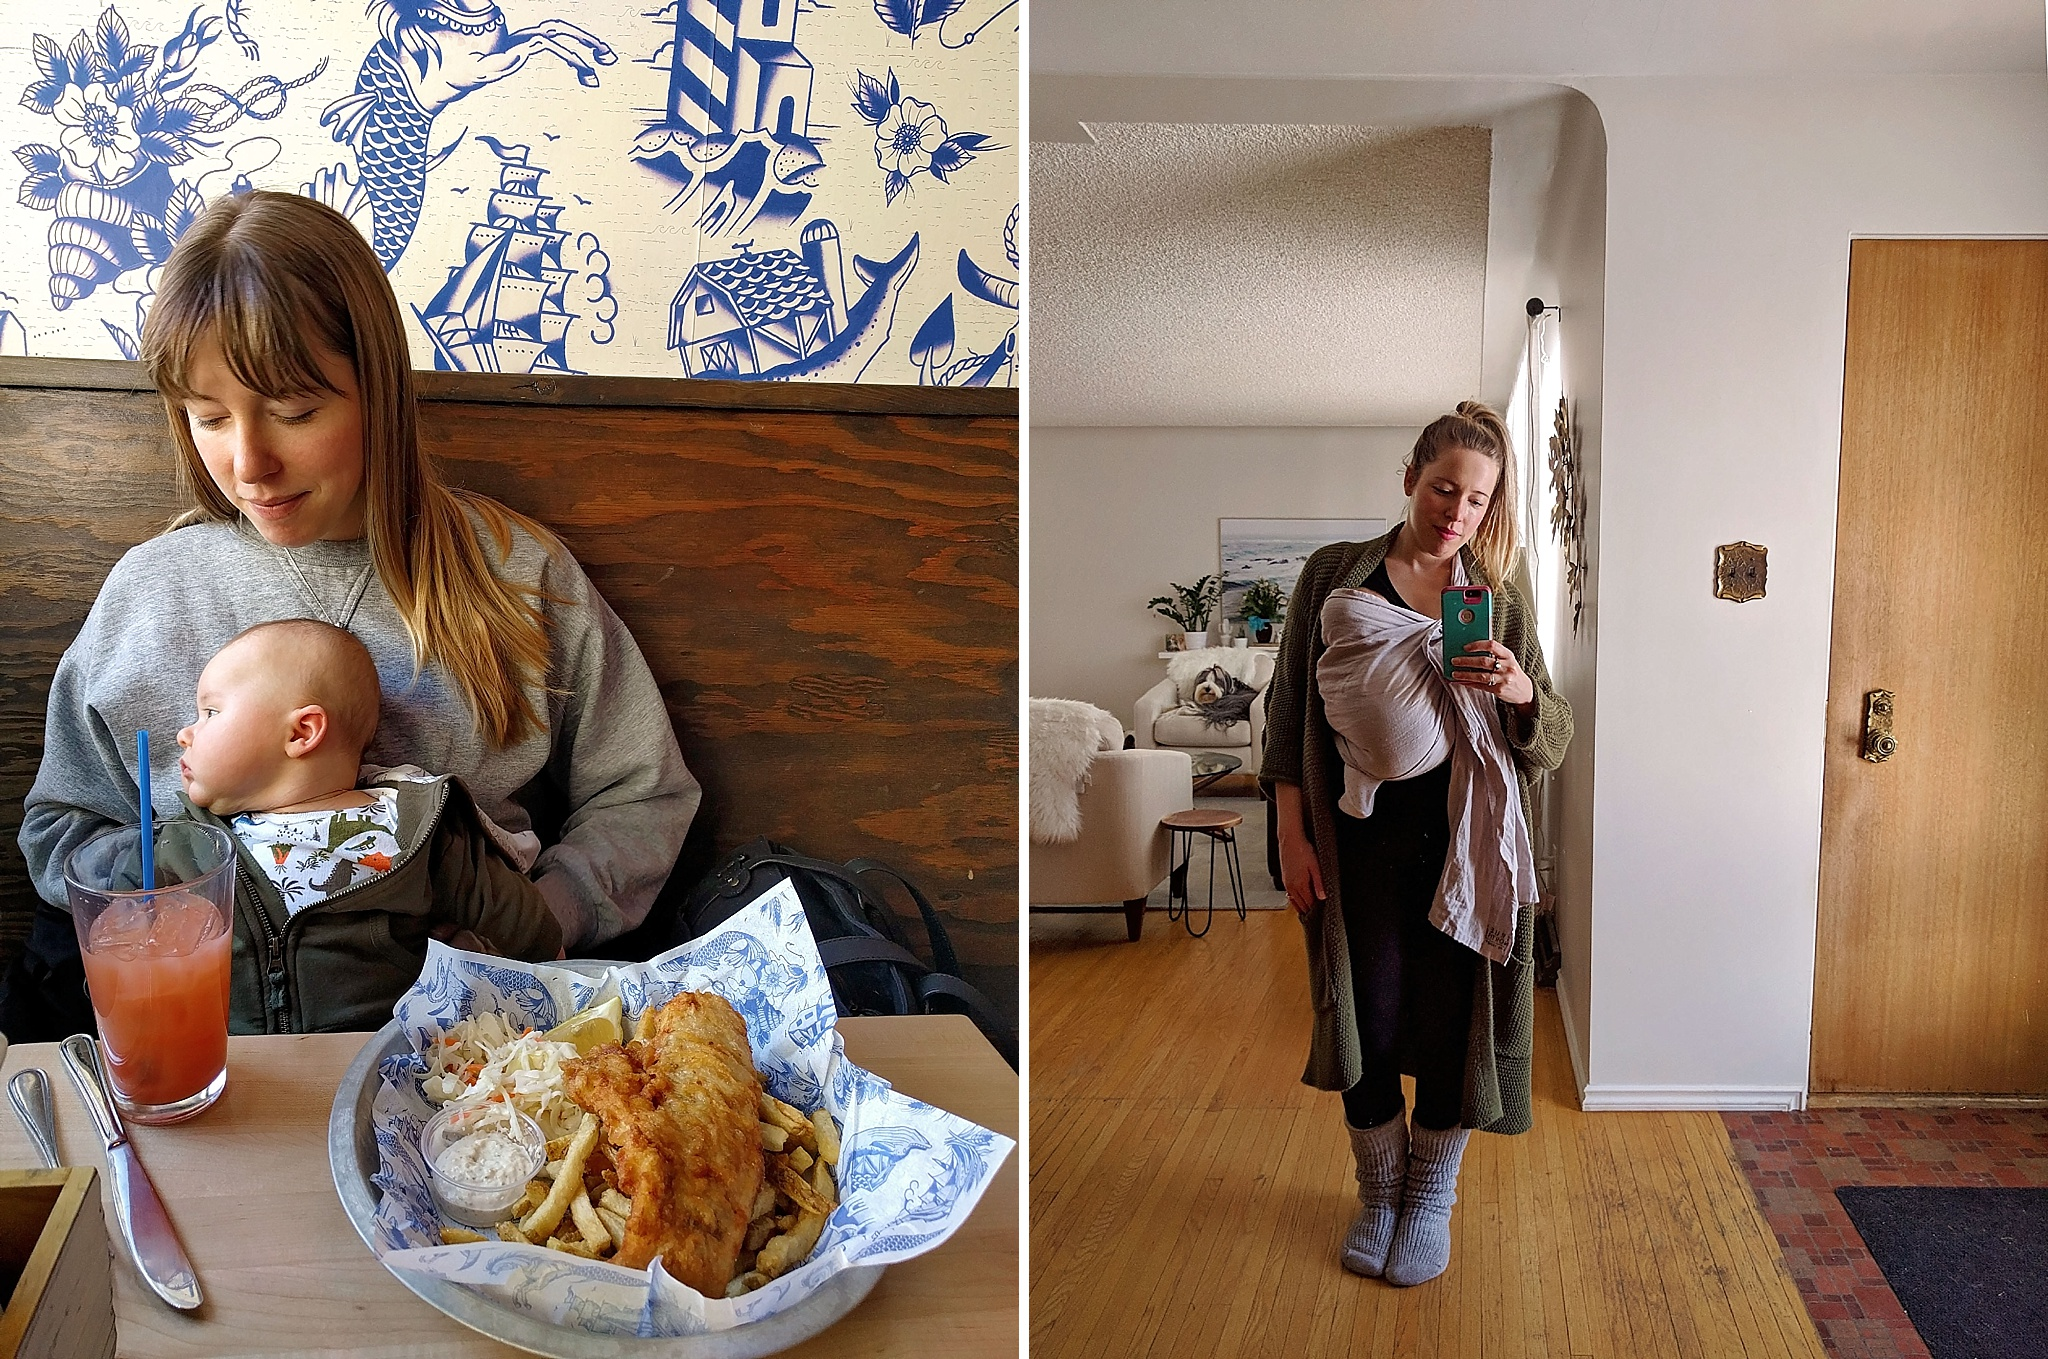 Left: taking babies out and about helps acclimatize them to activity and different environments. Felix was totally chill while I ate these fish and chips. Right, wearing my beloved ring sling!